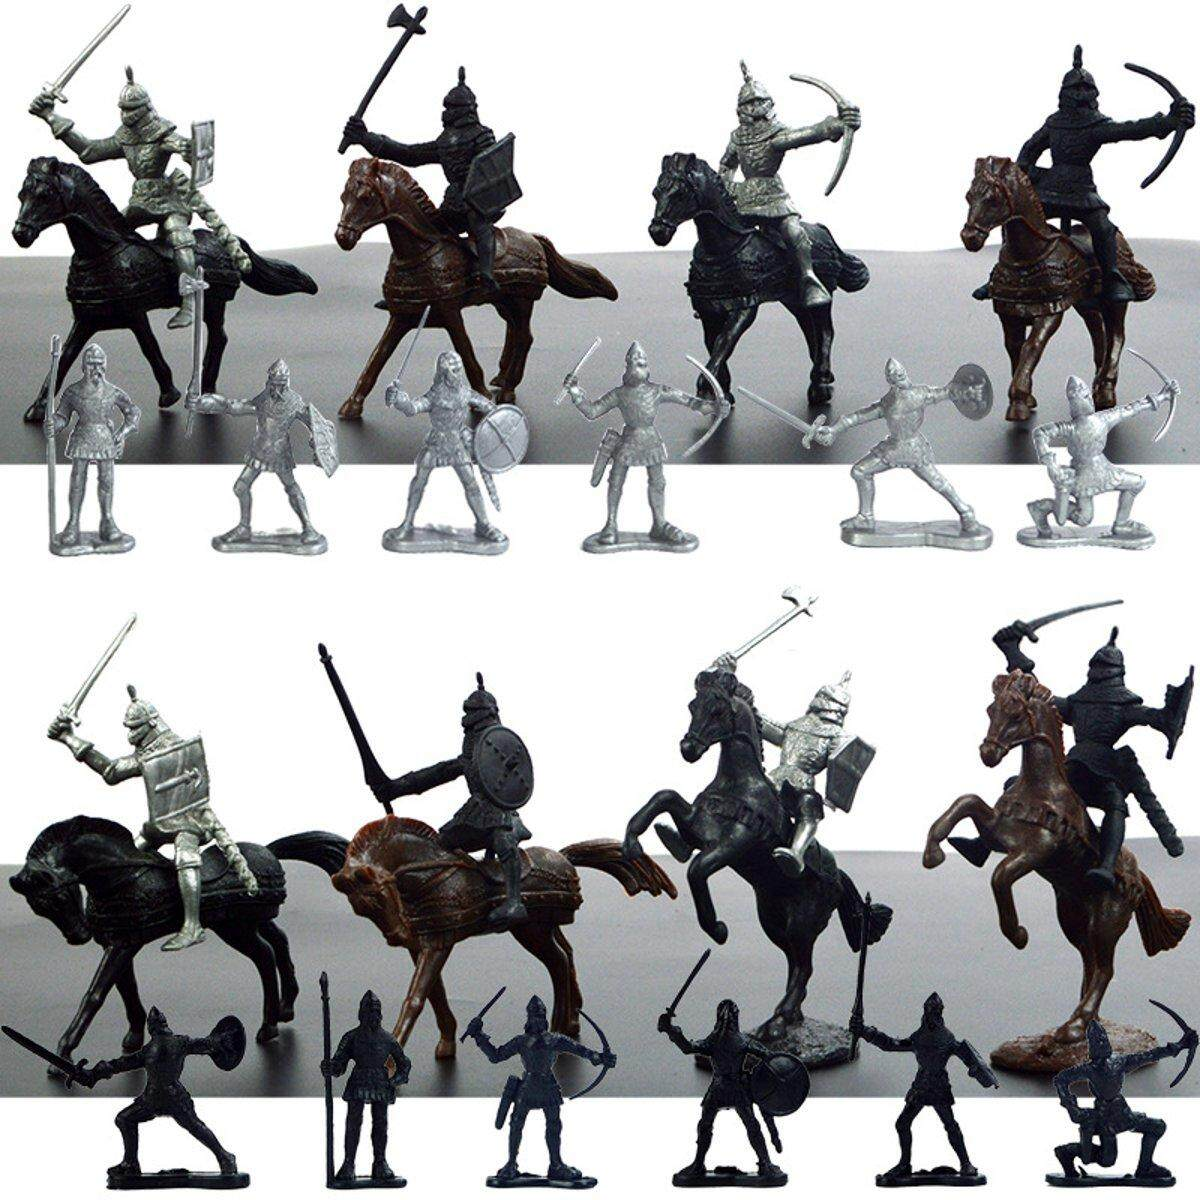 28pcs Medieval Knights Warriors Horses Soldiers Figures Model Playset Kids Toy By Glimmer.